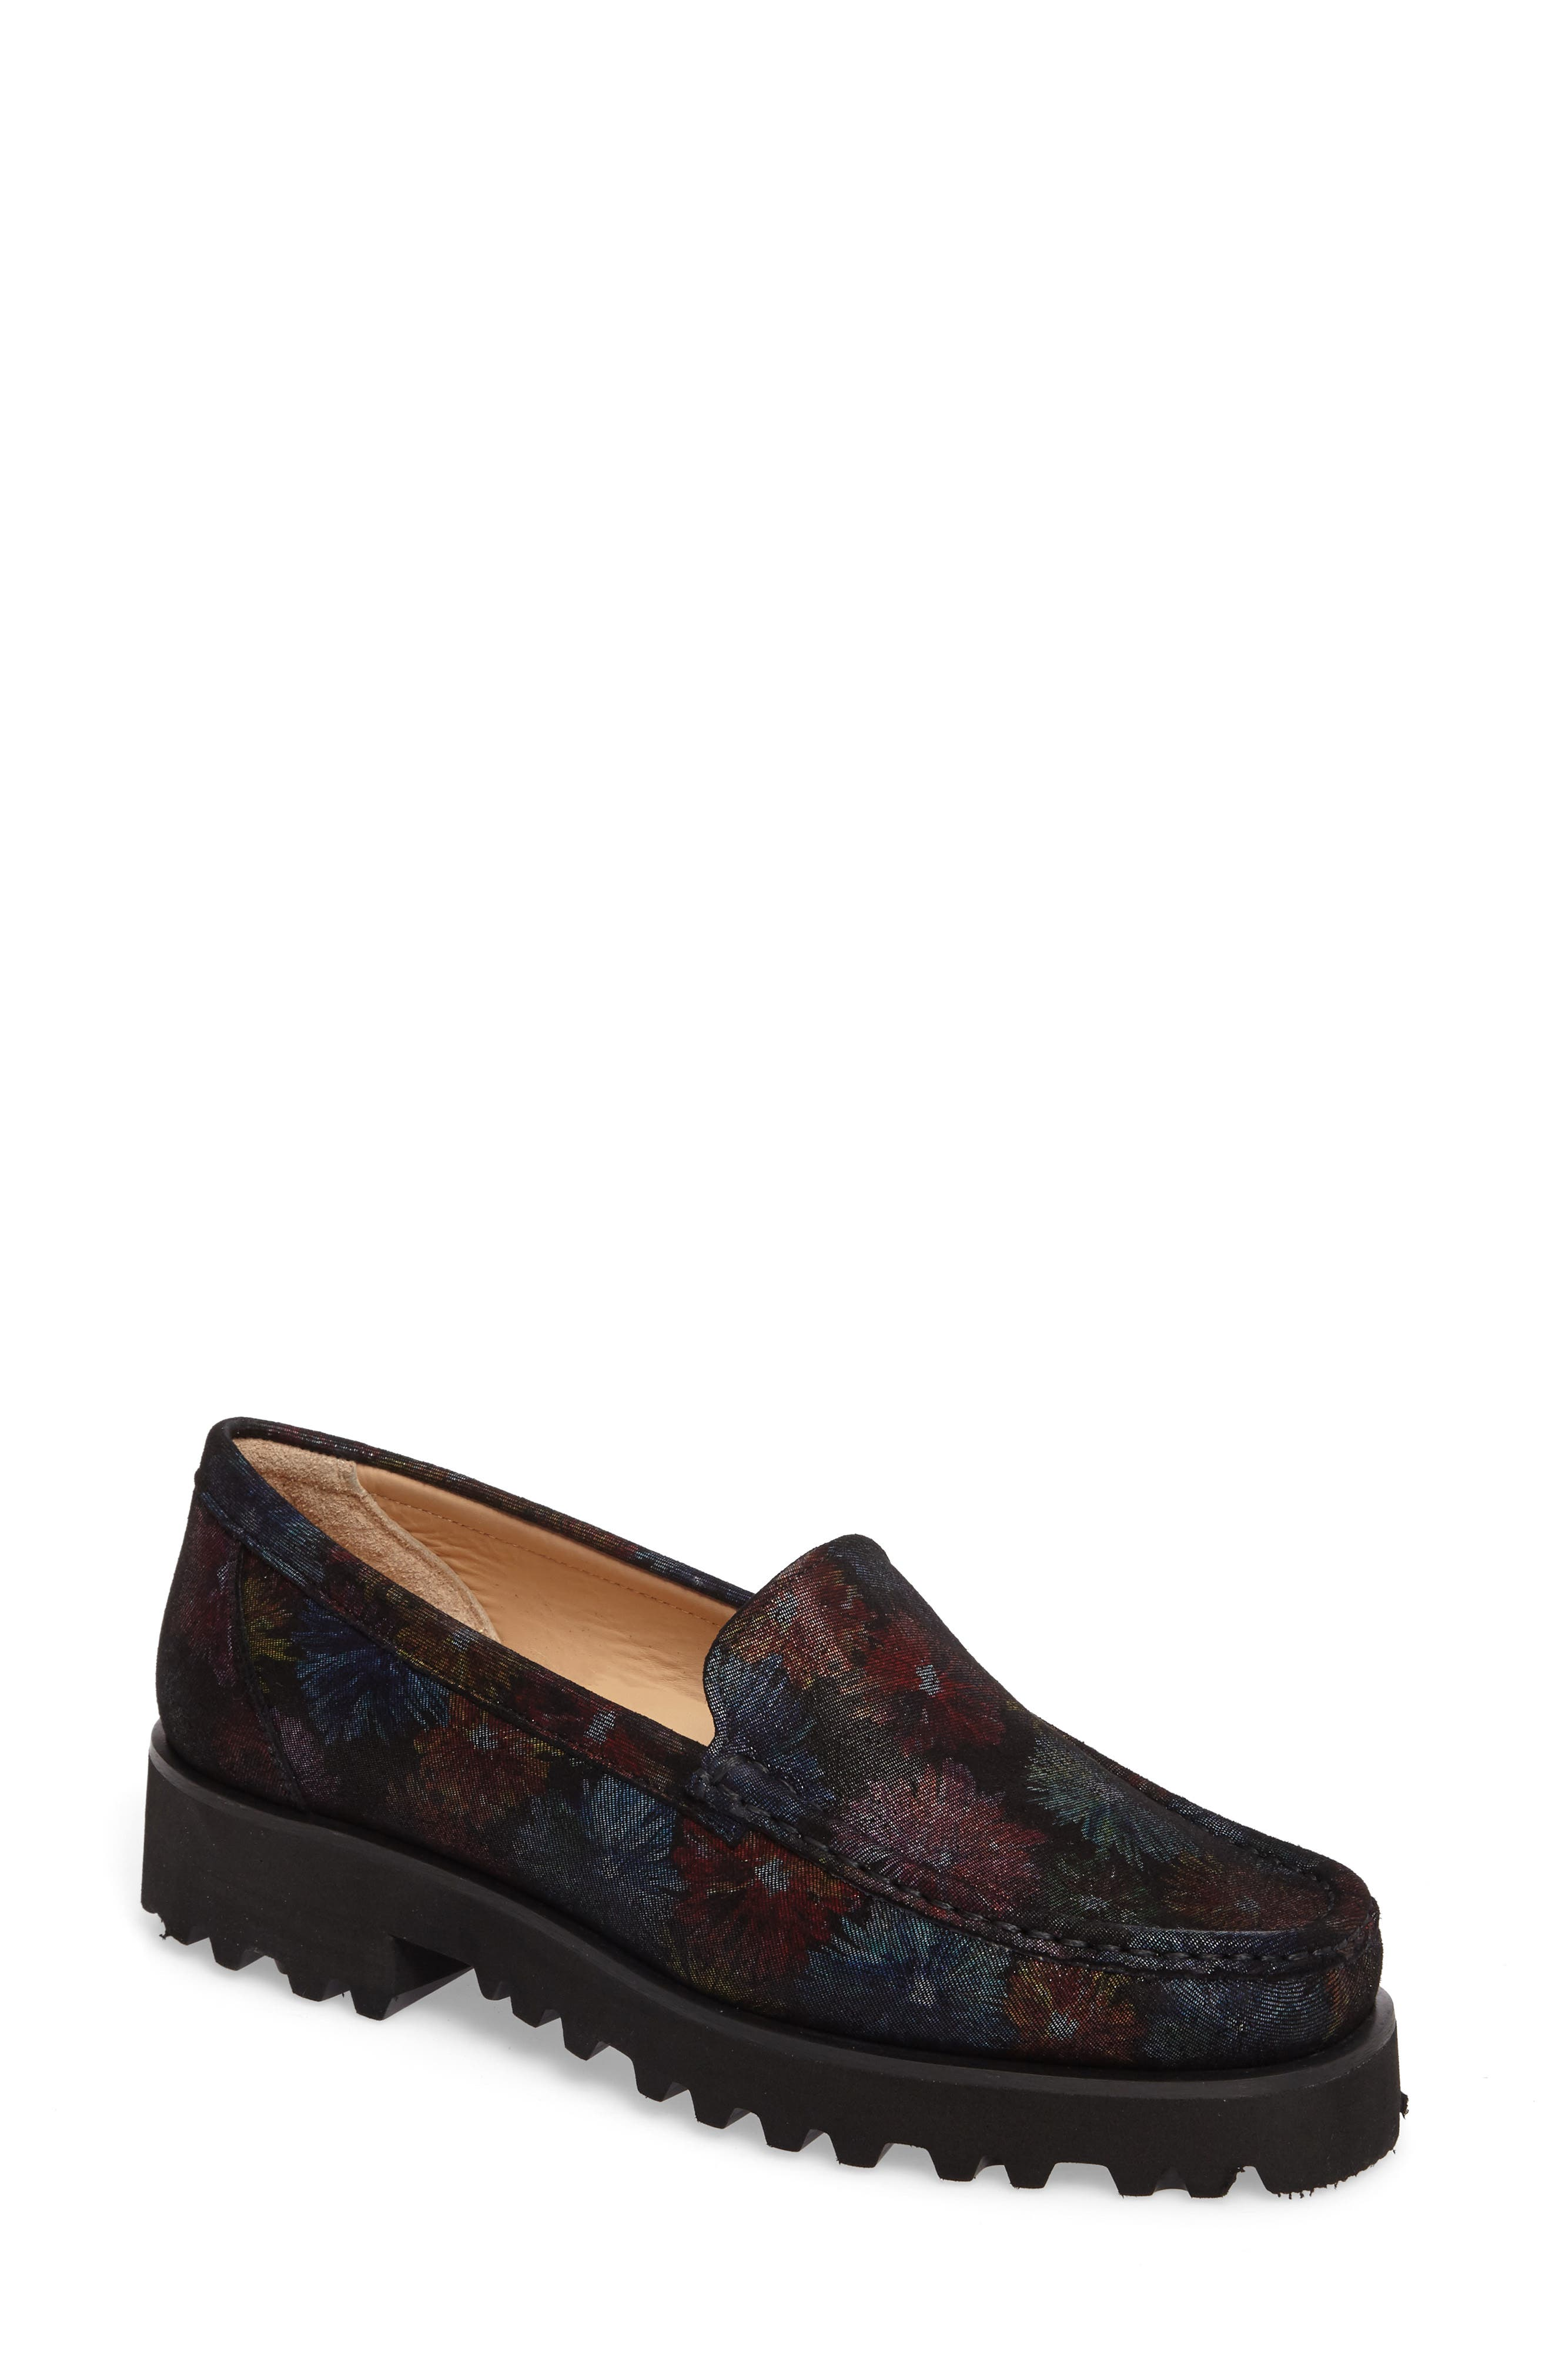 Rita Floral Water Resistant Penny Loafer,                             Main thumbnail 1, color,                             400